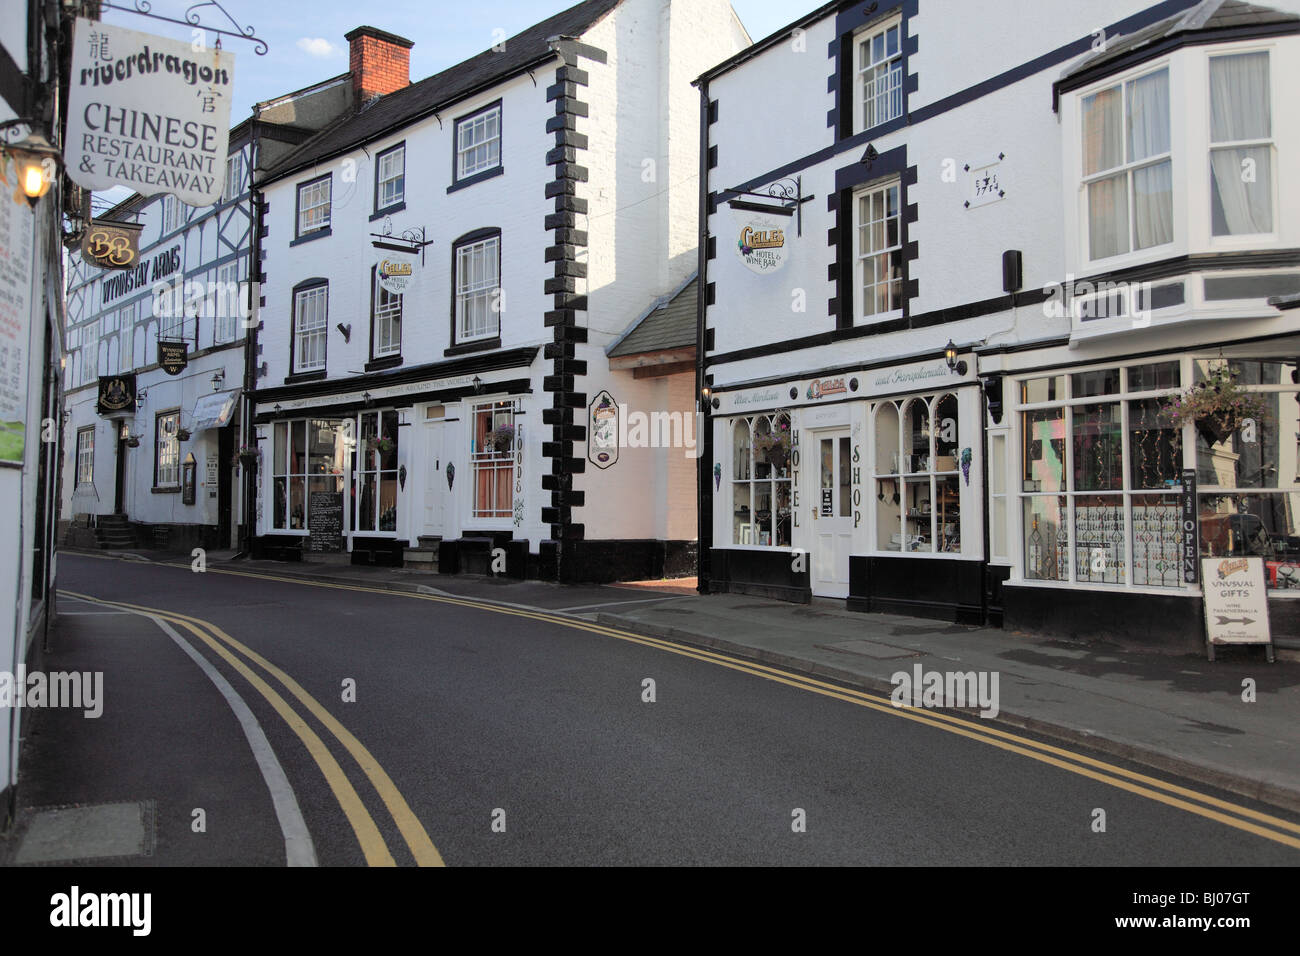 Bridge Street, Llangollen with eighteenth century buildings including Gales Hotel and Wine Bar Stock Photo